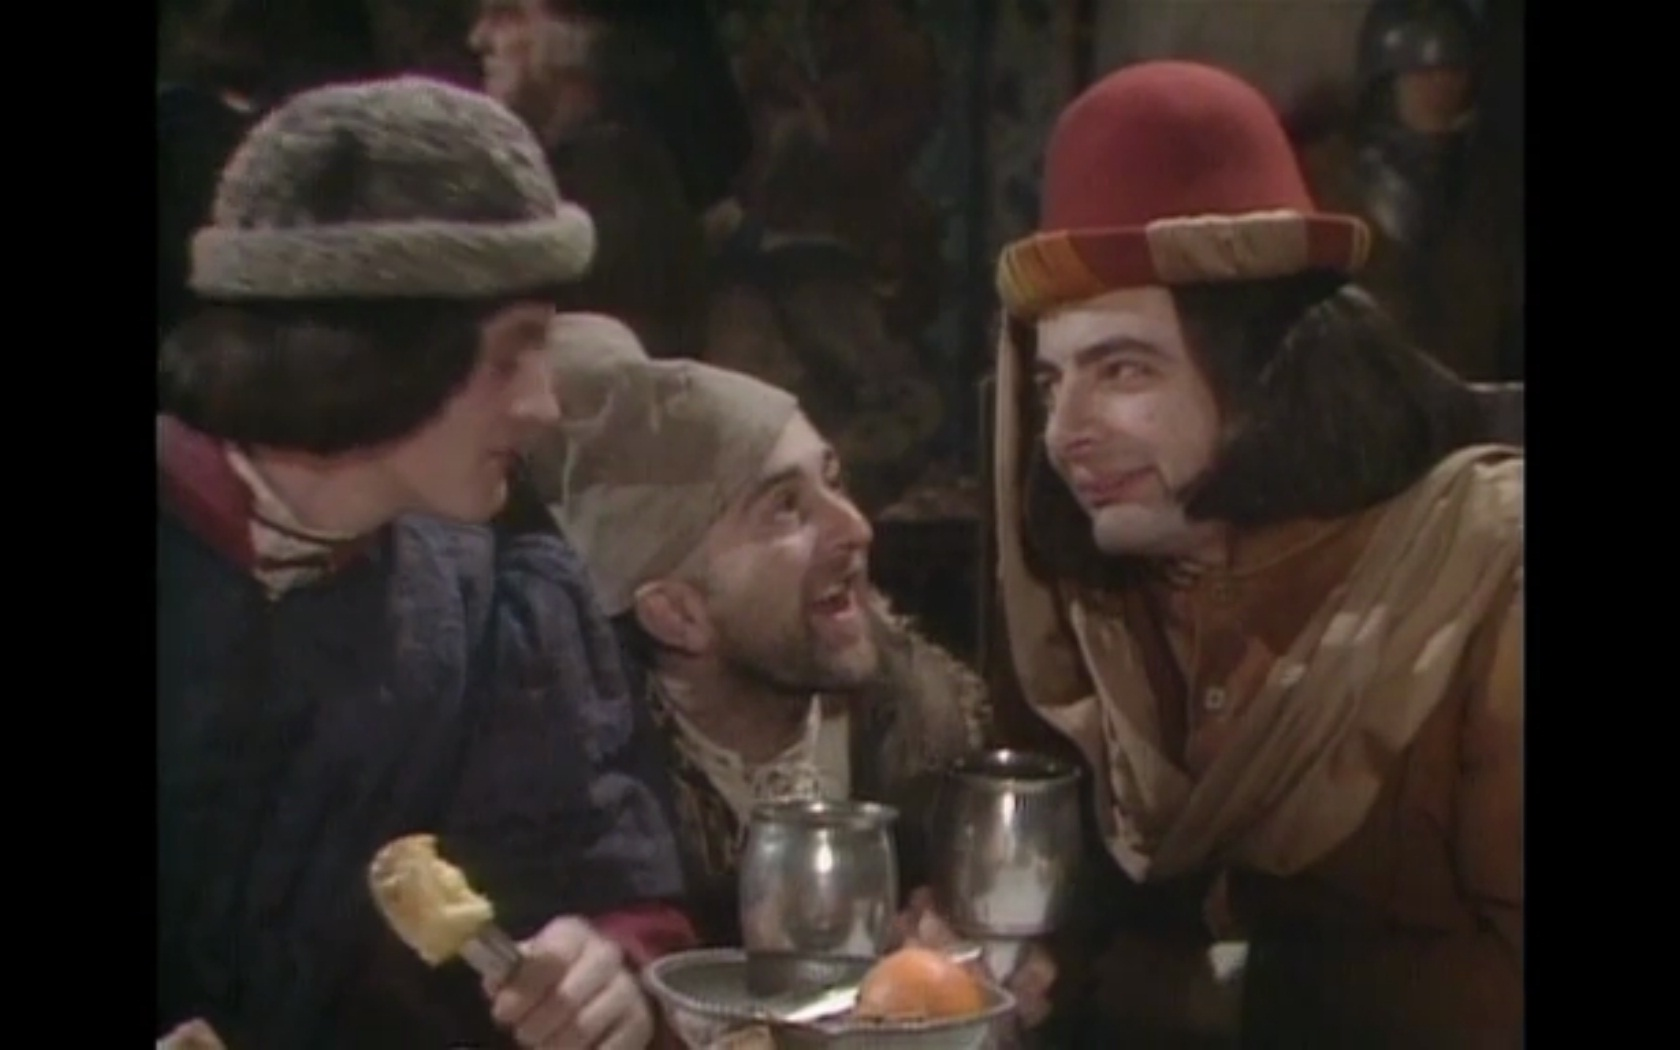 Blackadder Series 1 - this series of Blackadder is very different from the others, mainly because the characters of Baldrick and Blackadder appear to be reversed.